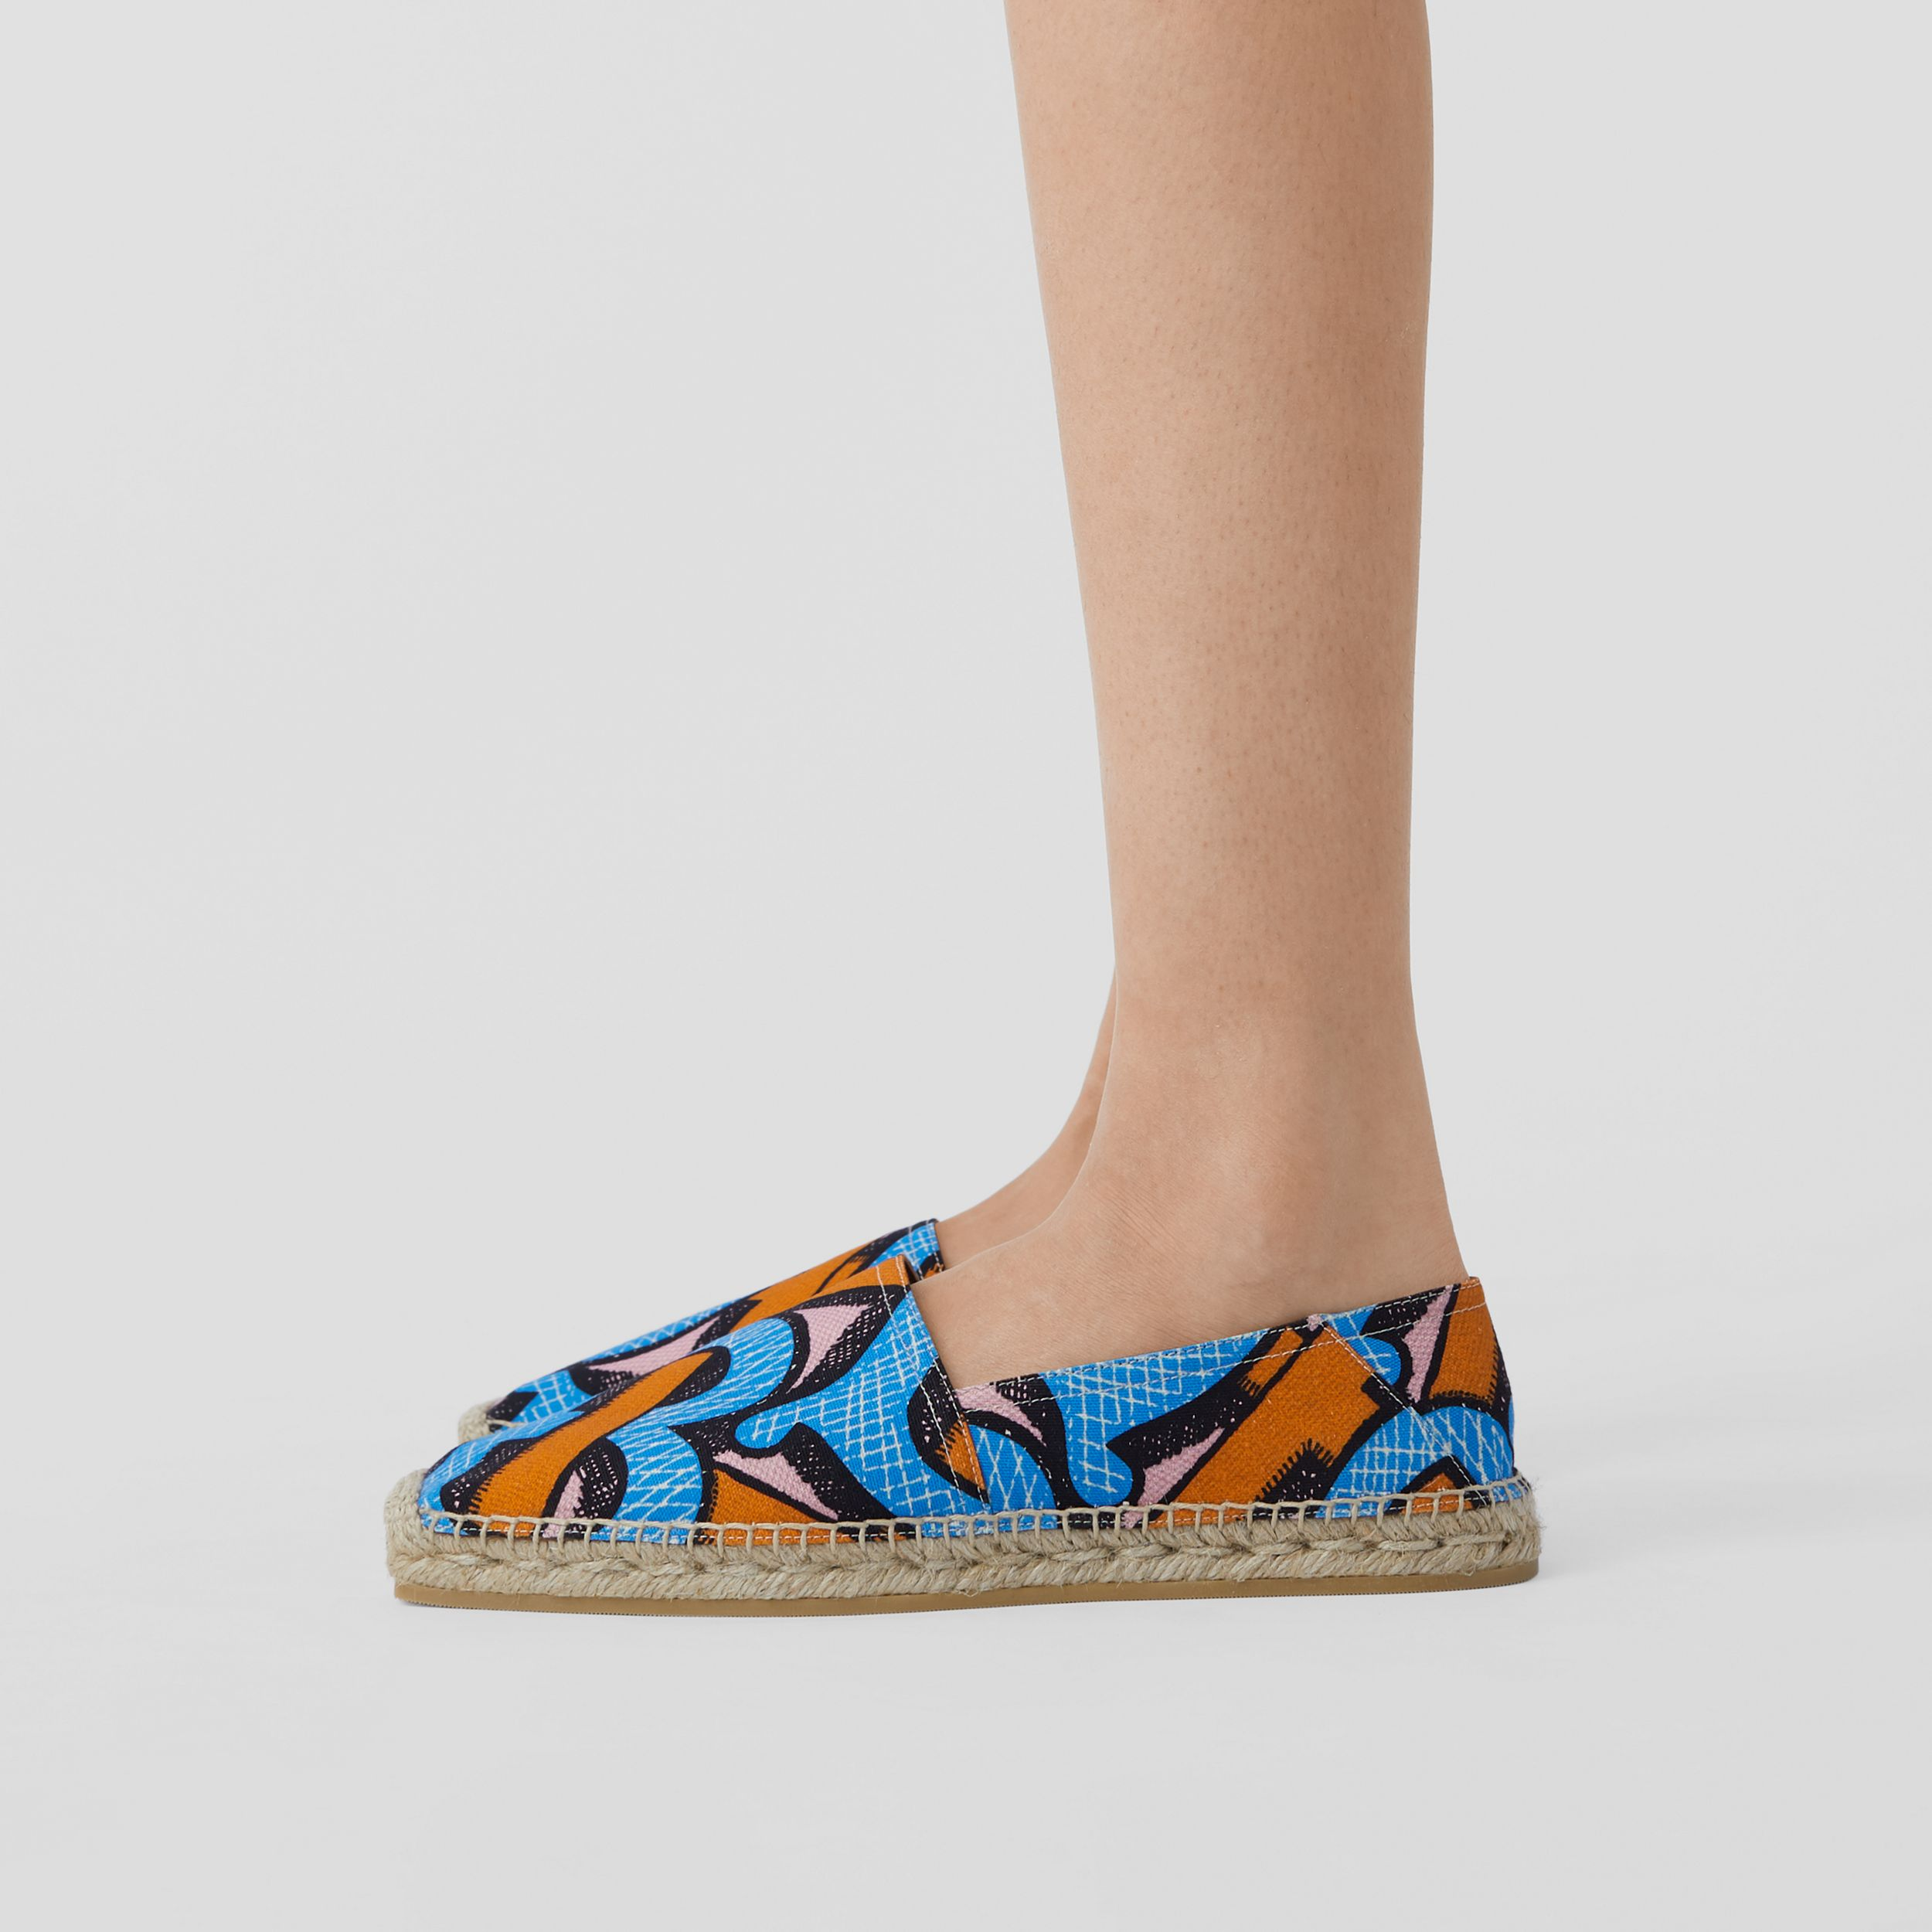 Monogram Print Cotton Canvas Espadrilles in Bright Cobalt - Women | Burberry - 3